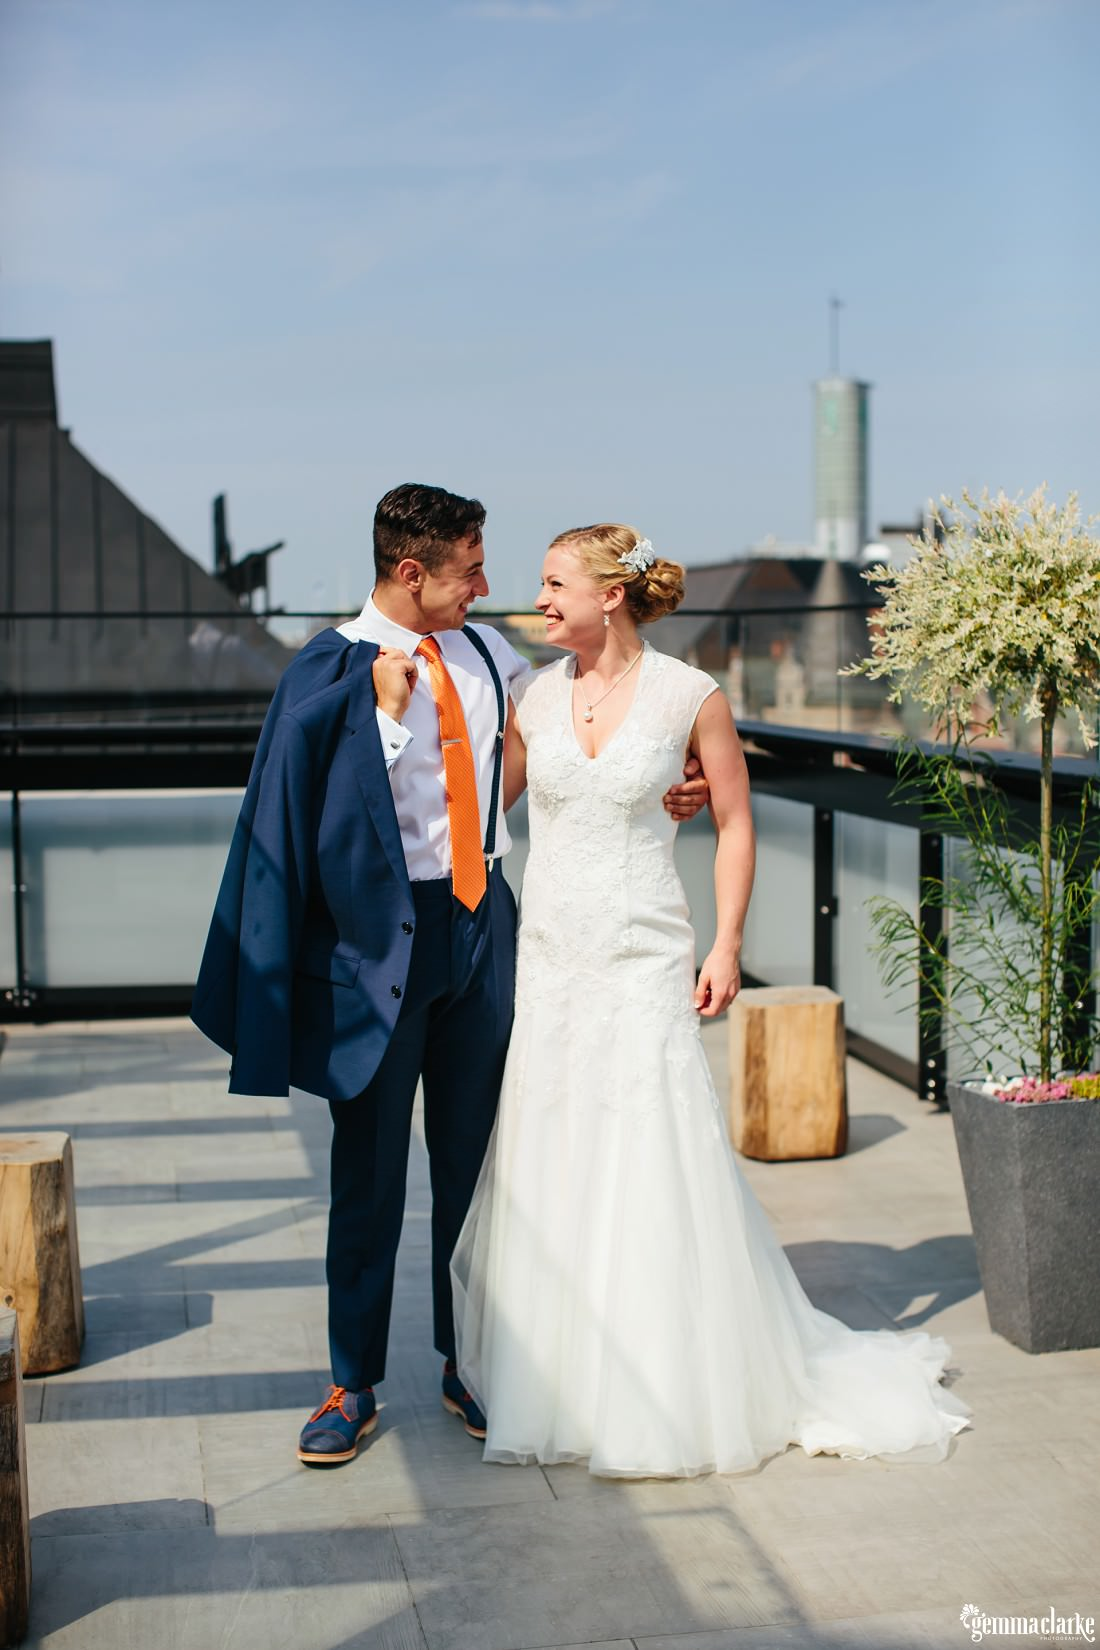 A smiling bride and groom with their arms around each other on a rooftop terrace